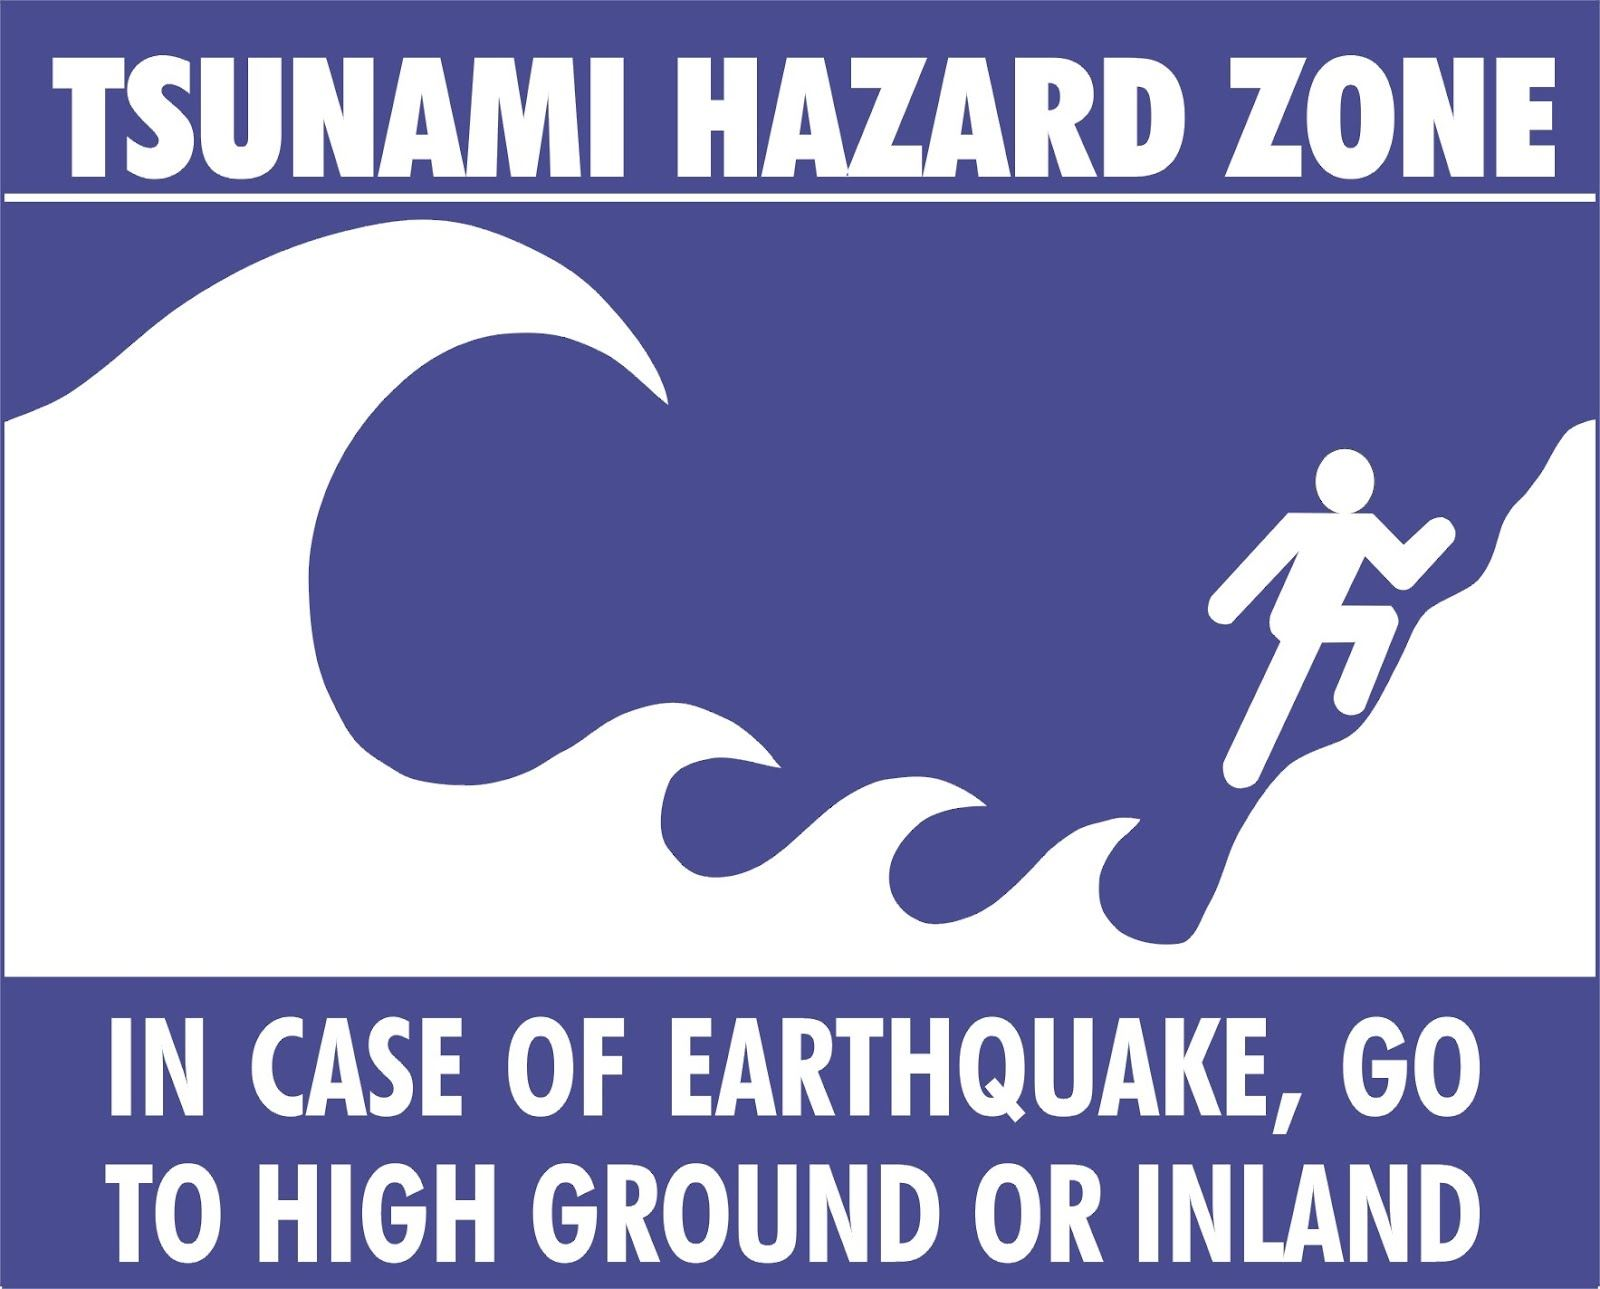 Tsunami Hazard Zone - In Case of Earthquake, Go to High Ground or Inland